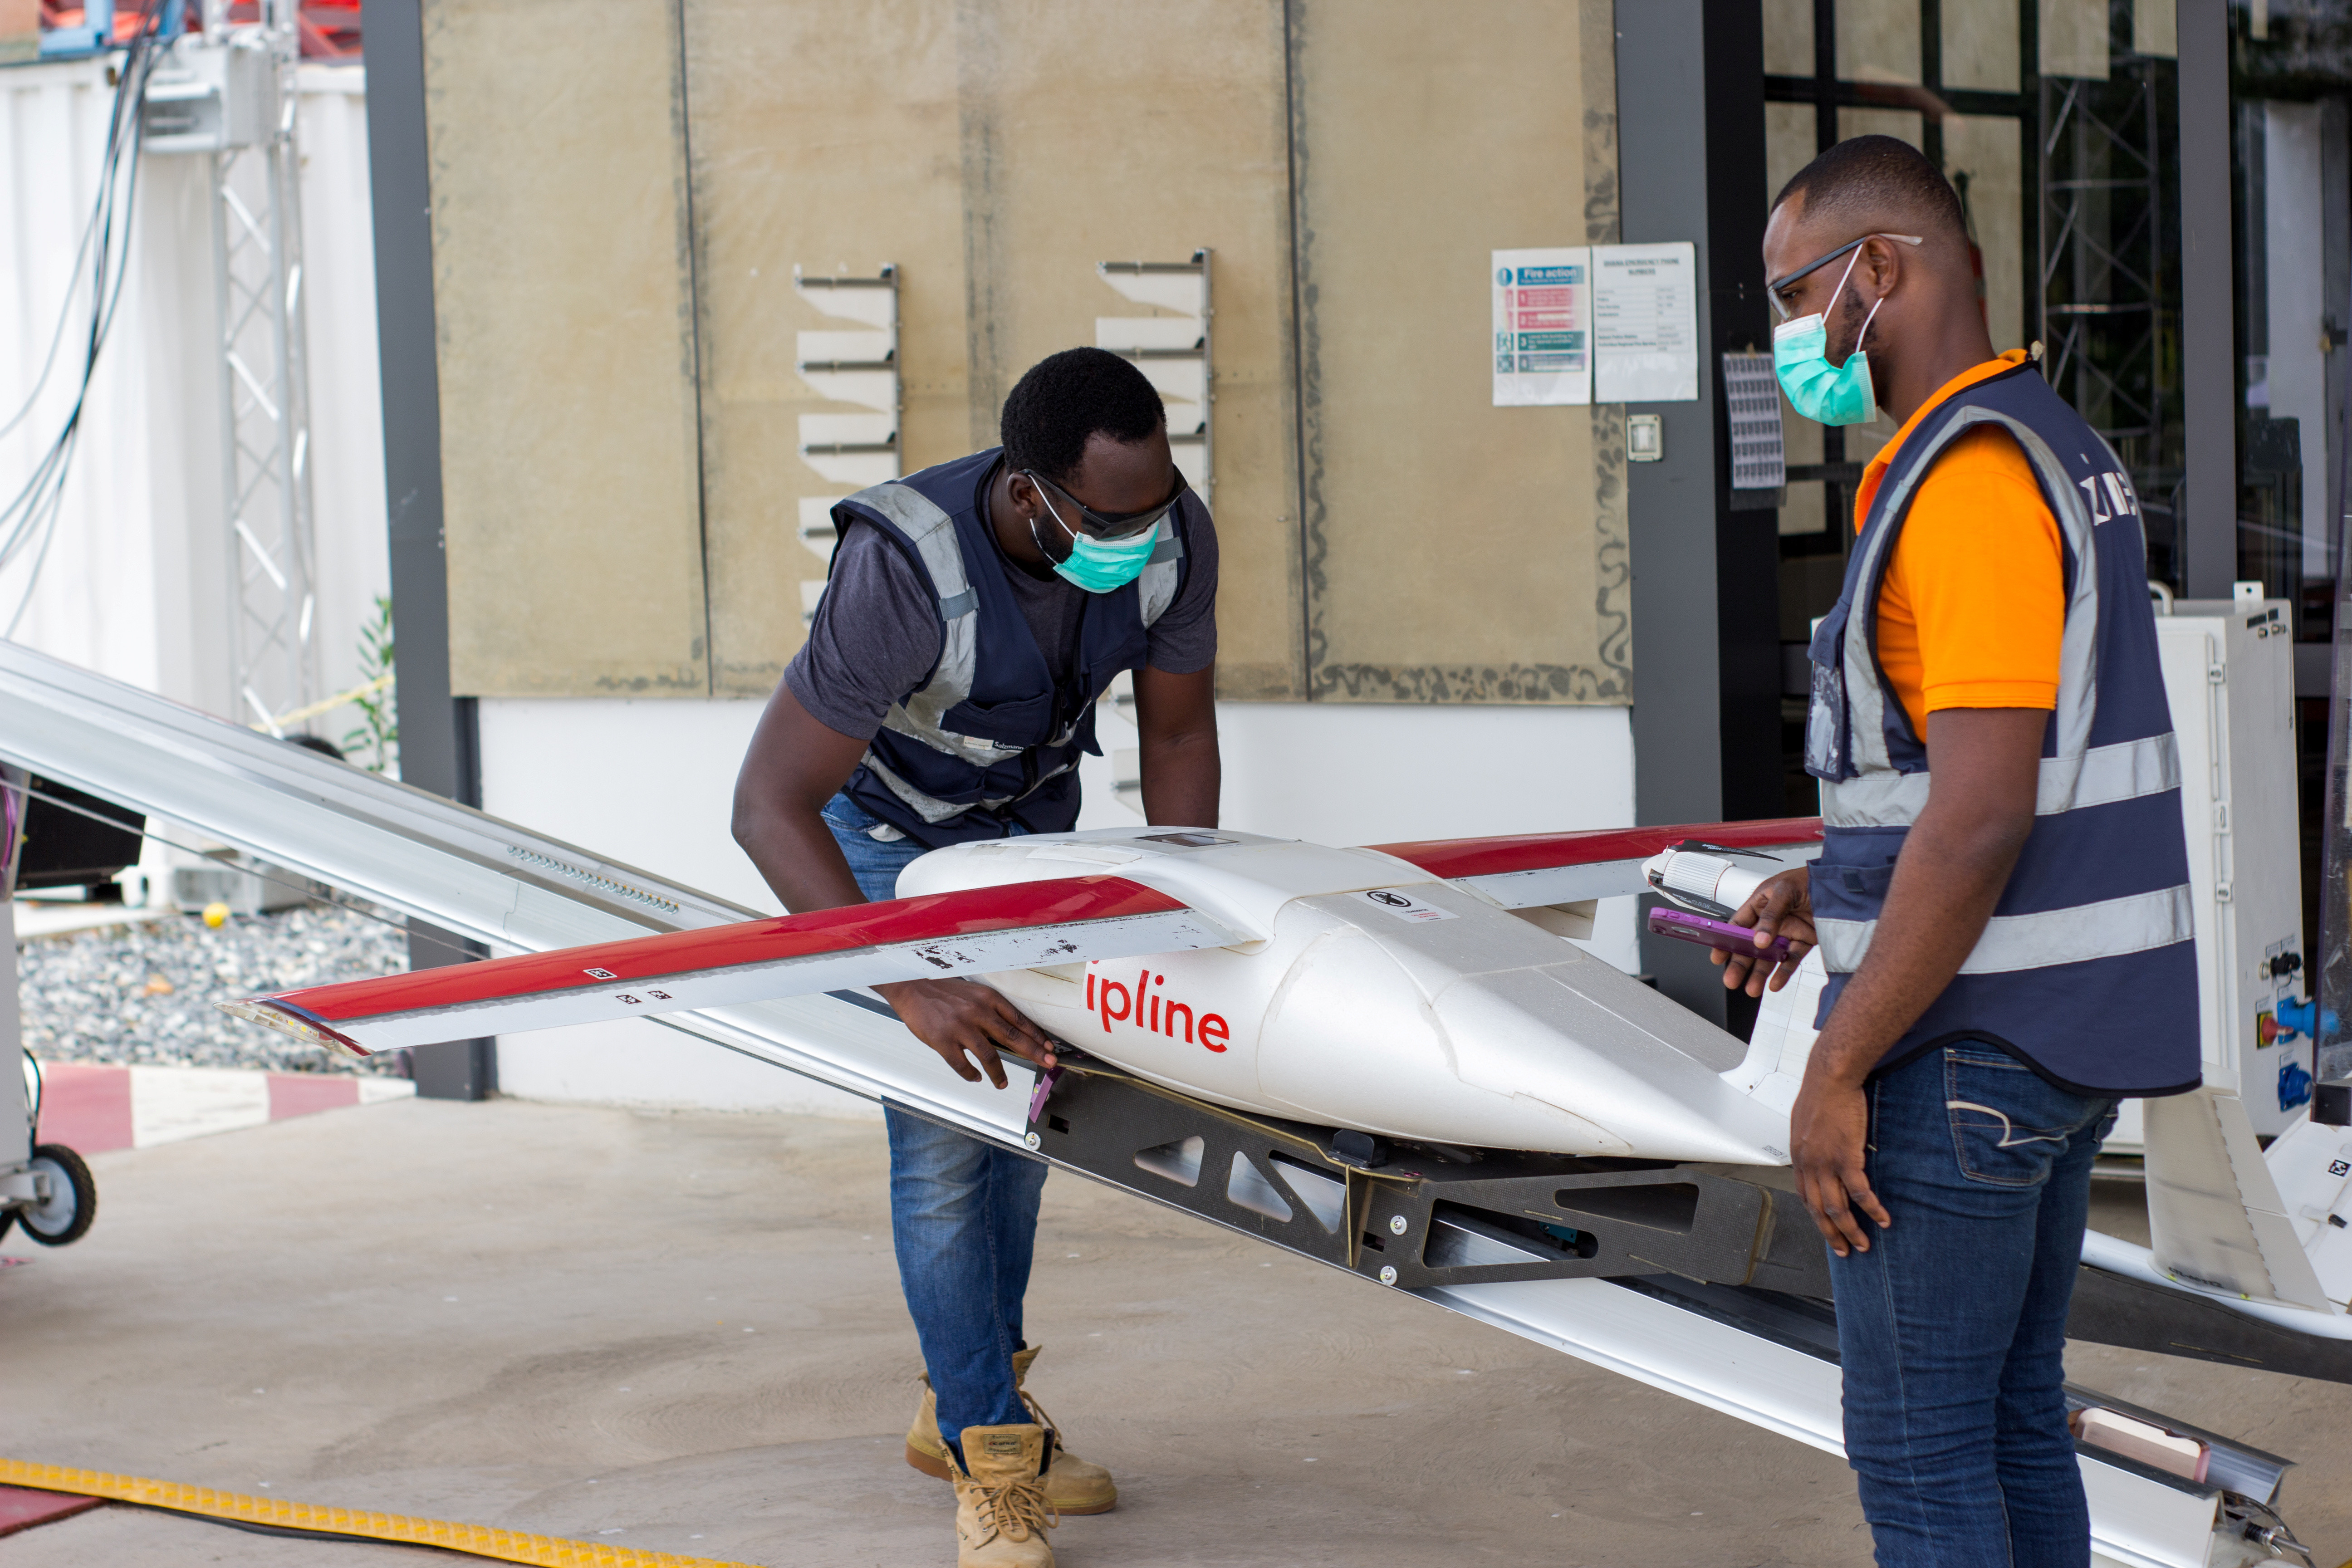 Flight operators perform pre-flight checks on a drone, amid the coronavirus disease (COVID-19) outbreak in Accra, Ghana April 16, 2020. Picture taken April 16, 2020. Zipline/Handout via REUTERS ATTENTION EDITORS - THIS IMAGE HAS BEEN SUPPLIED BY A THIRD PARTY - RC2LTI9R1U42